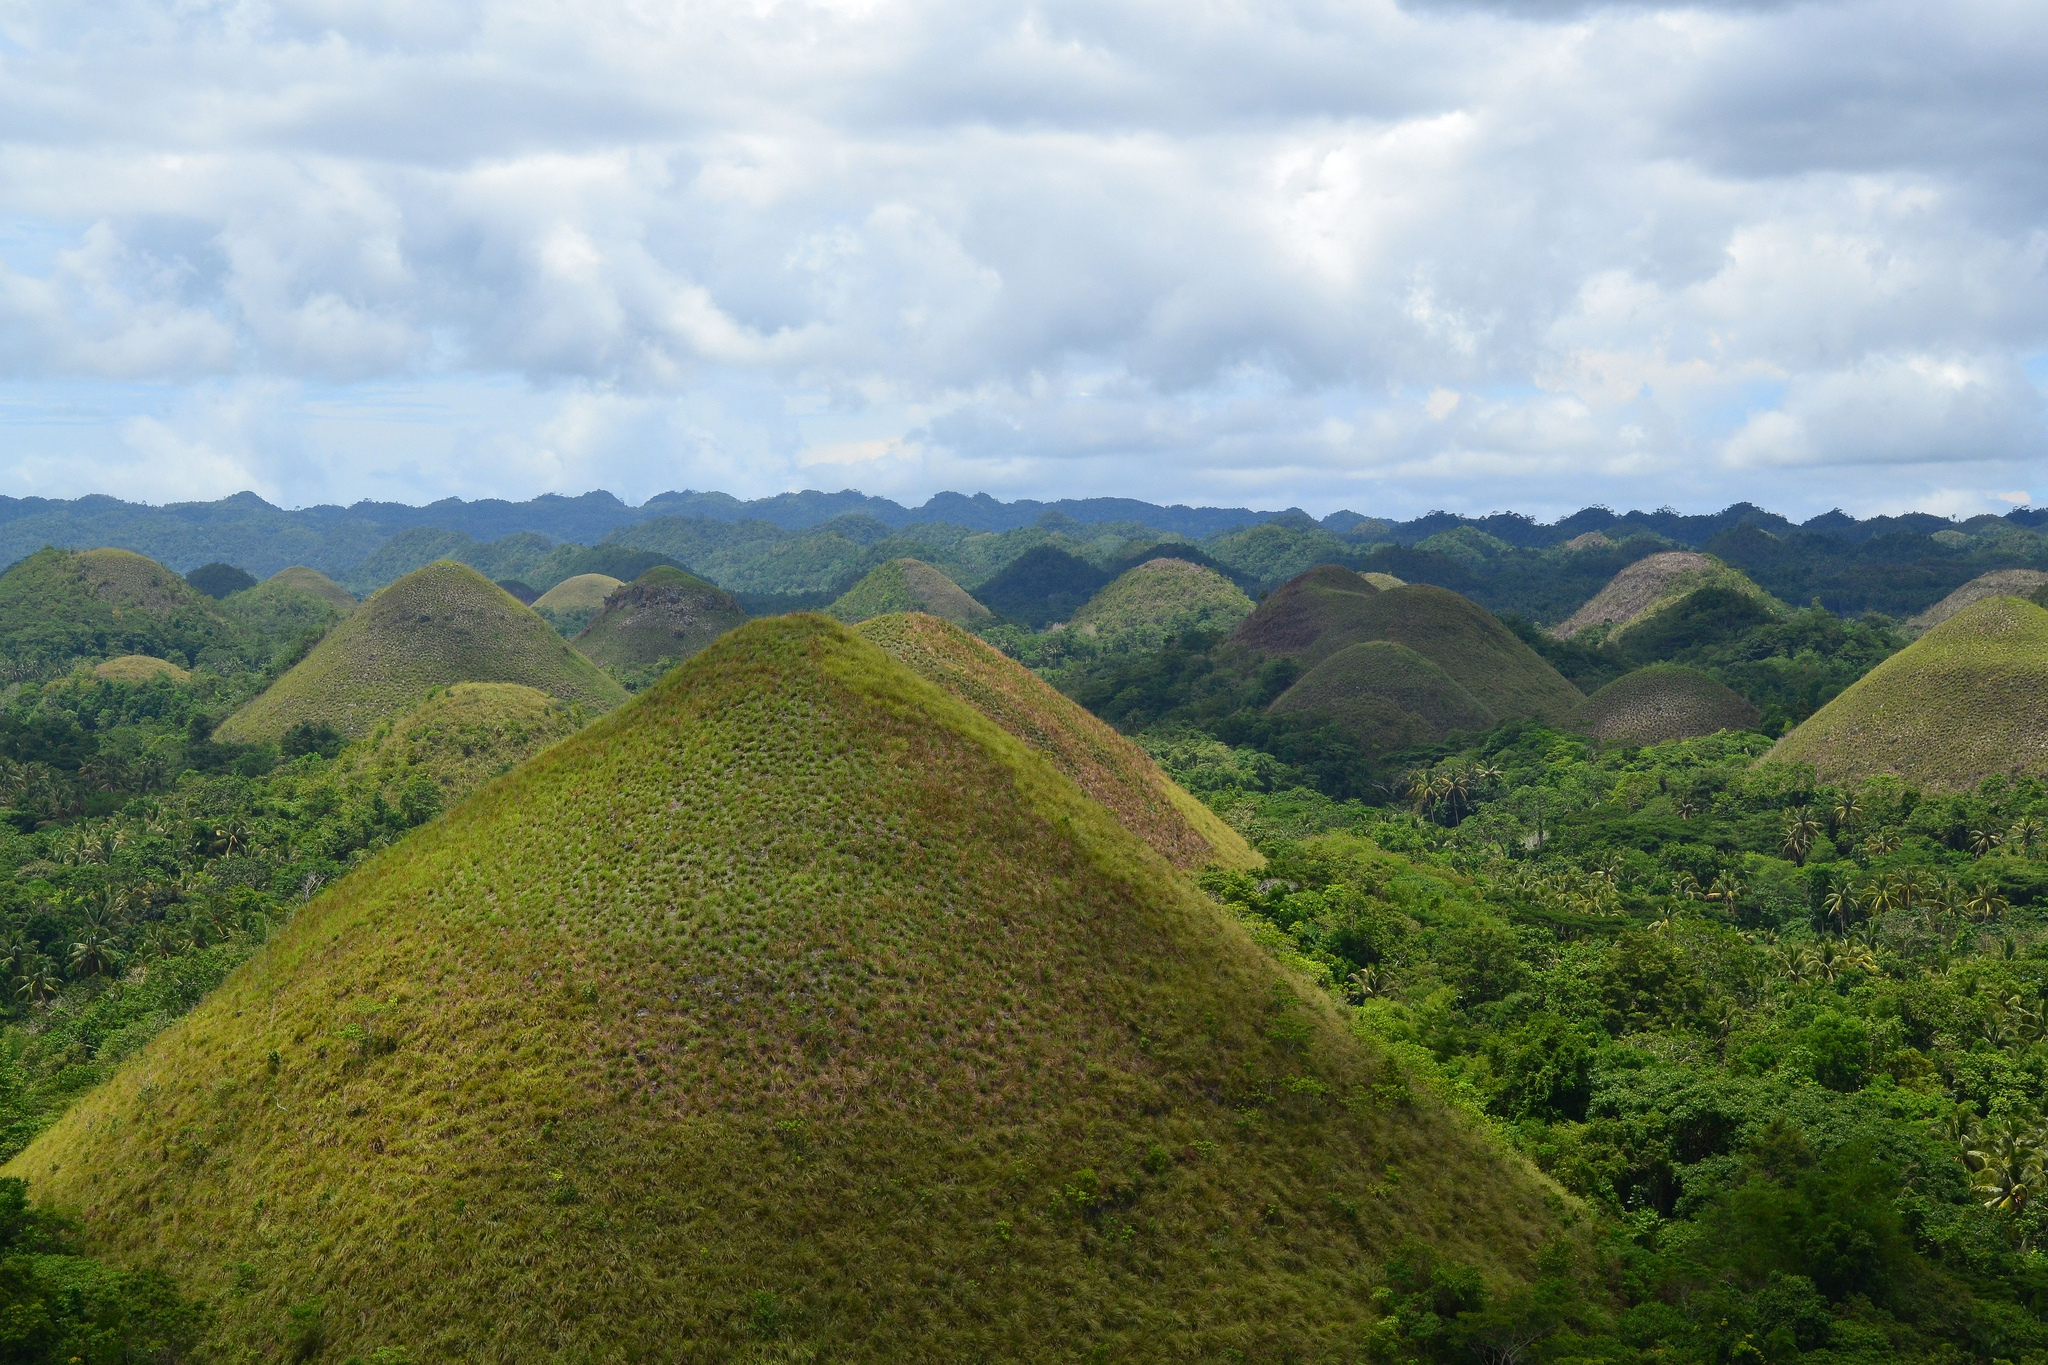 The Chocolate Hills - Chocolate Hills Natural Monument